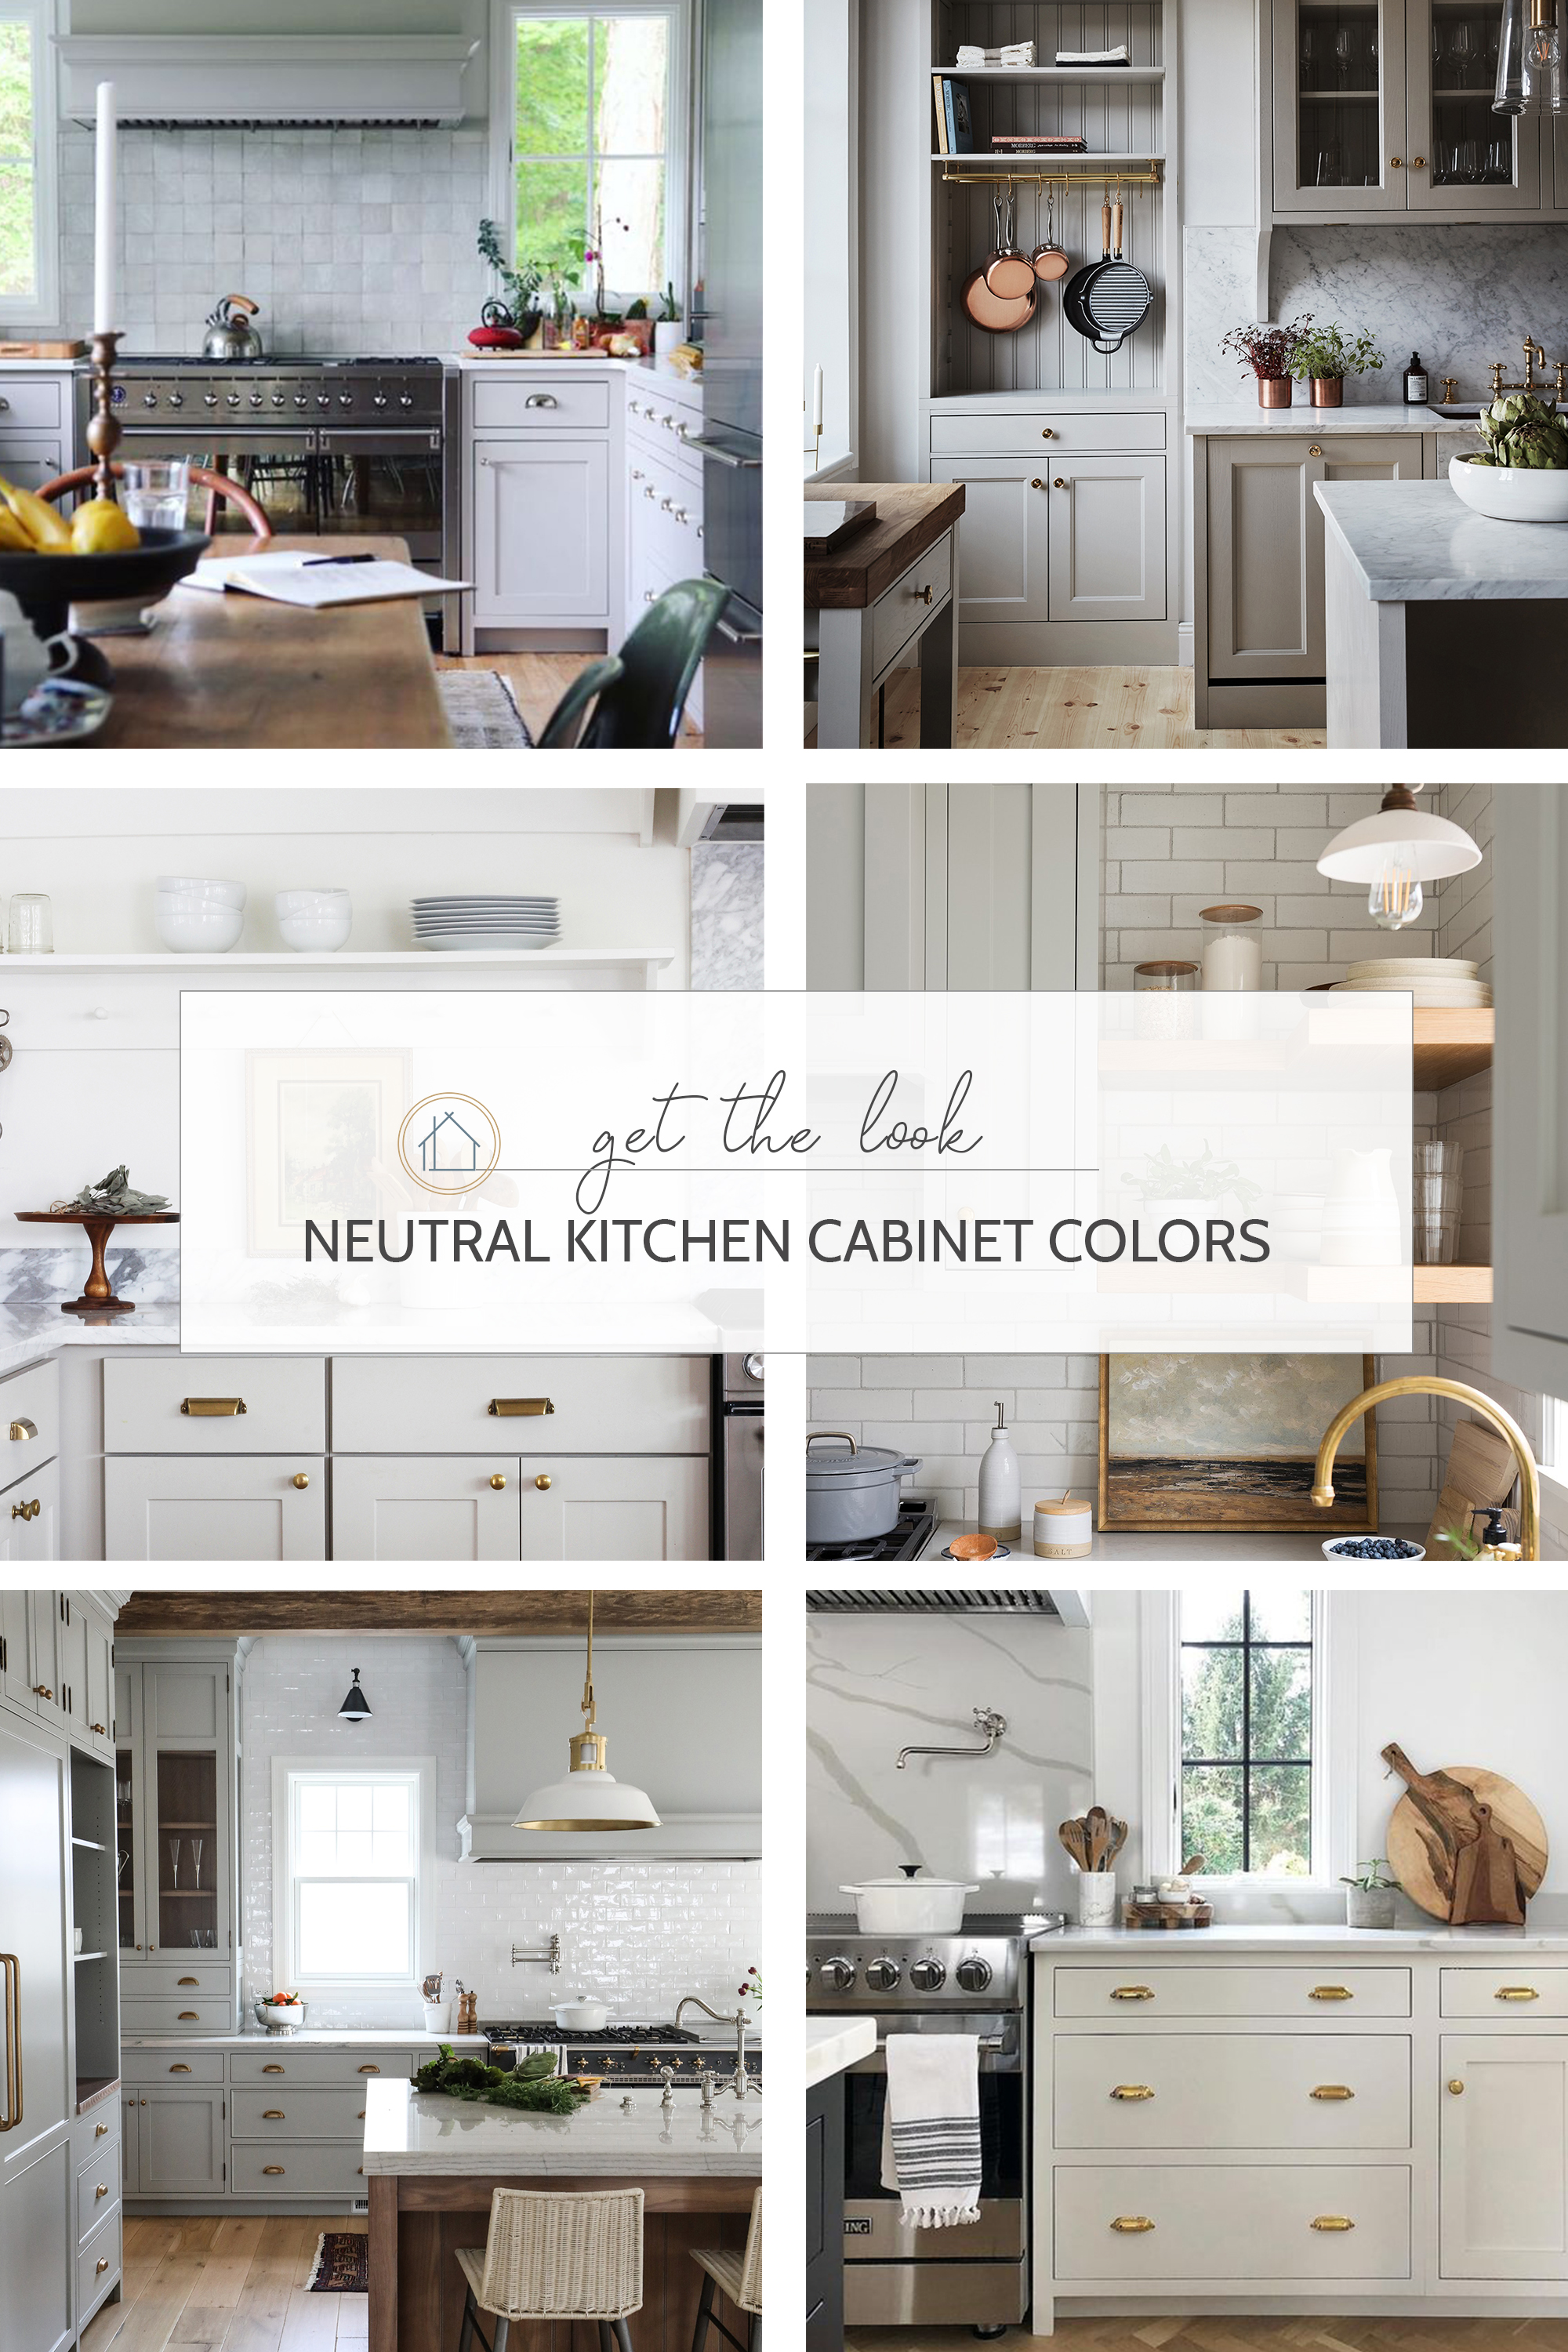 8 Great Neutral Cabinet Colors For Kitchens The Grit And Polish